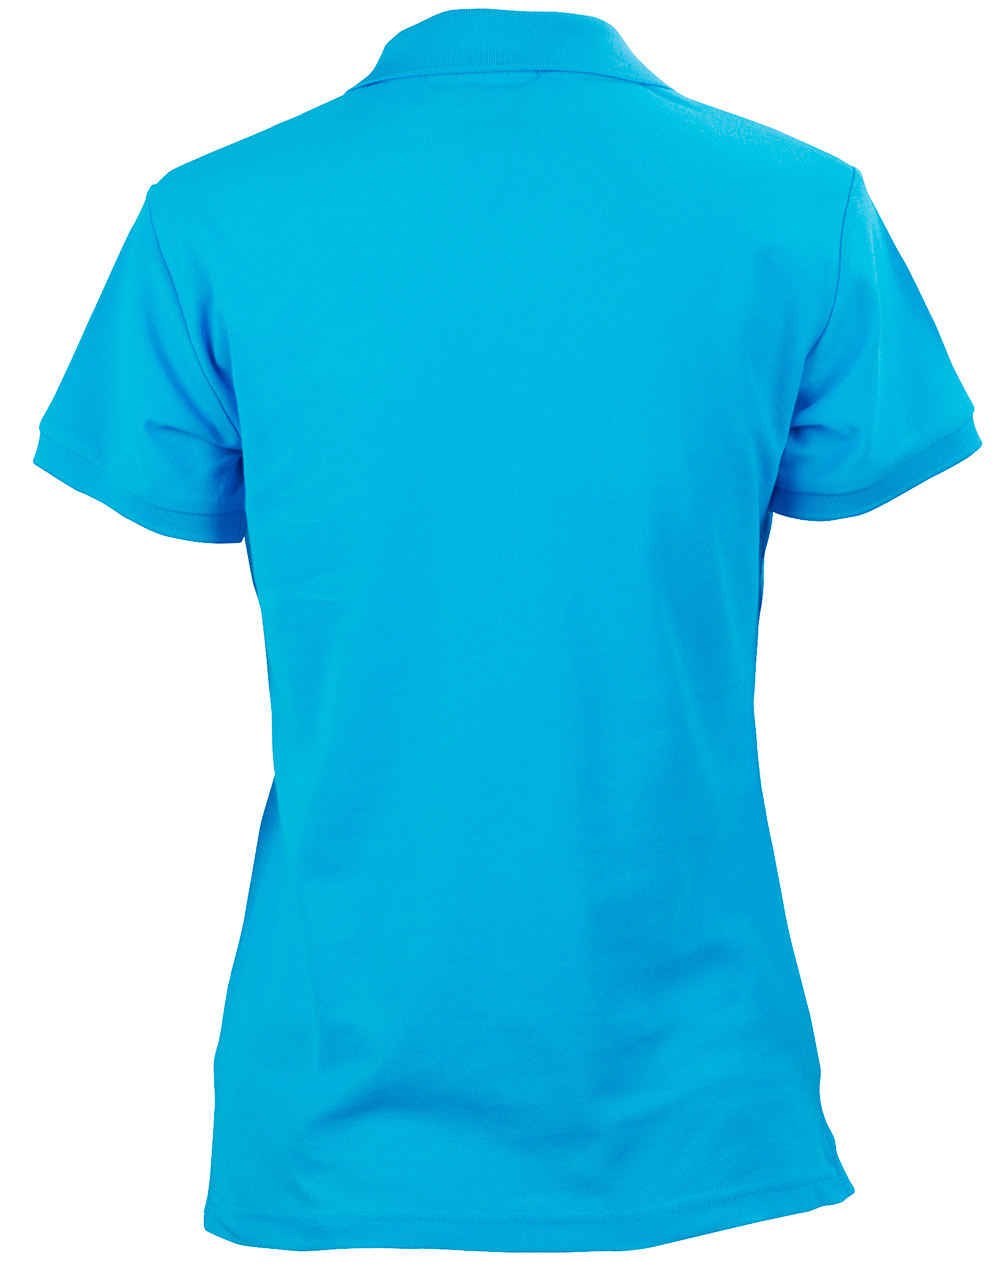 https://s3-ap-southeast-1.amazonaws.com/ws-imgs/POLOSHIRTS/PS64_AquaBlue_Back.jpg